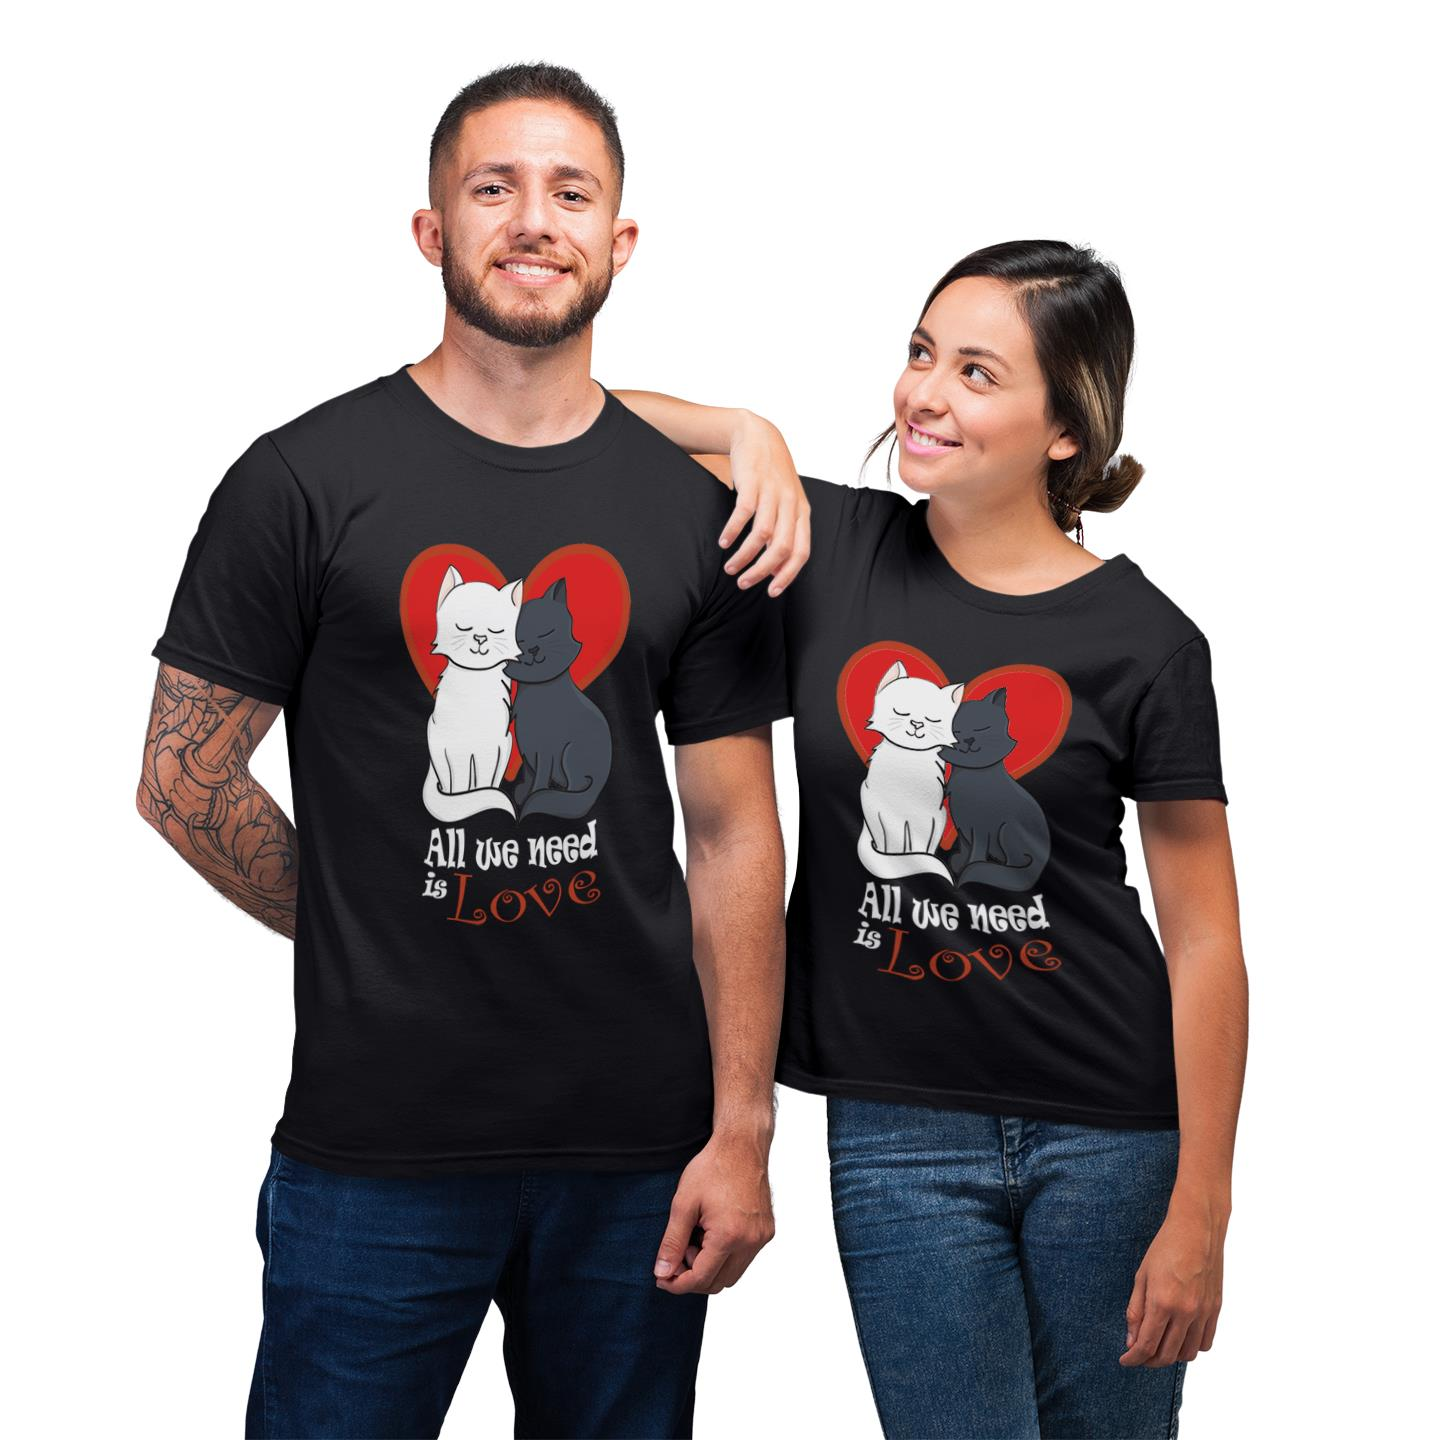 All We Need Is Love Cat With Heart Shirt For Couples Lover Matching T-shirt